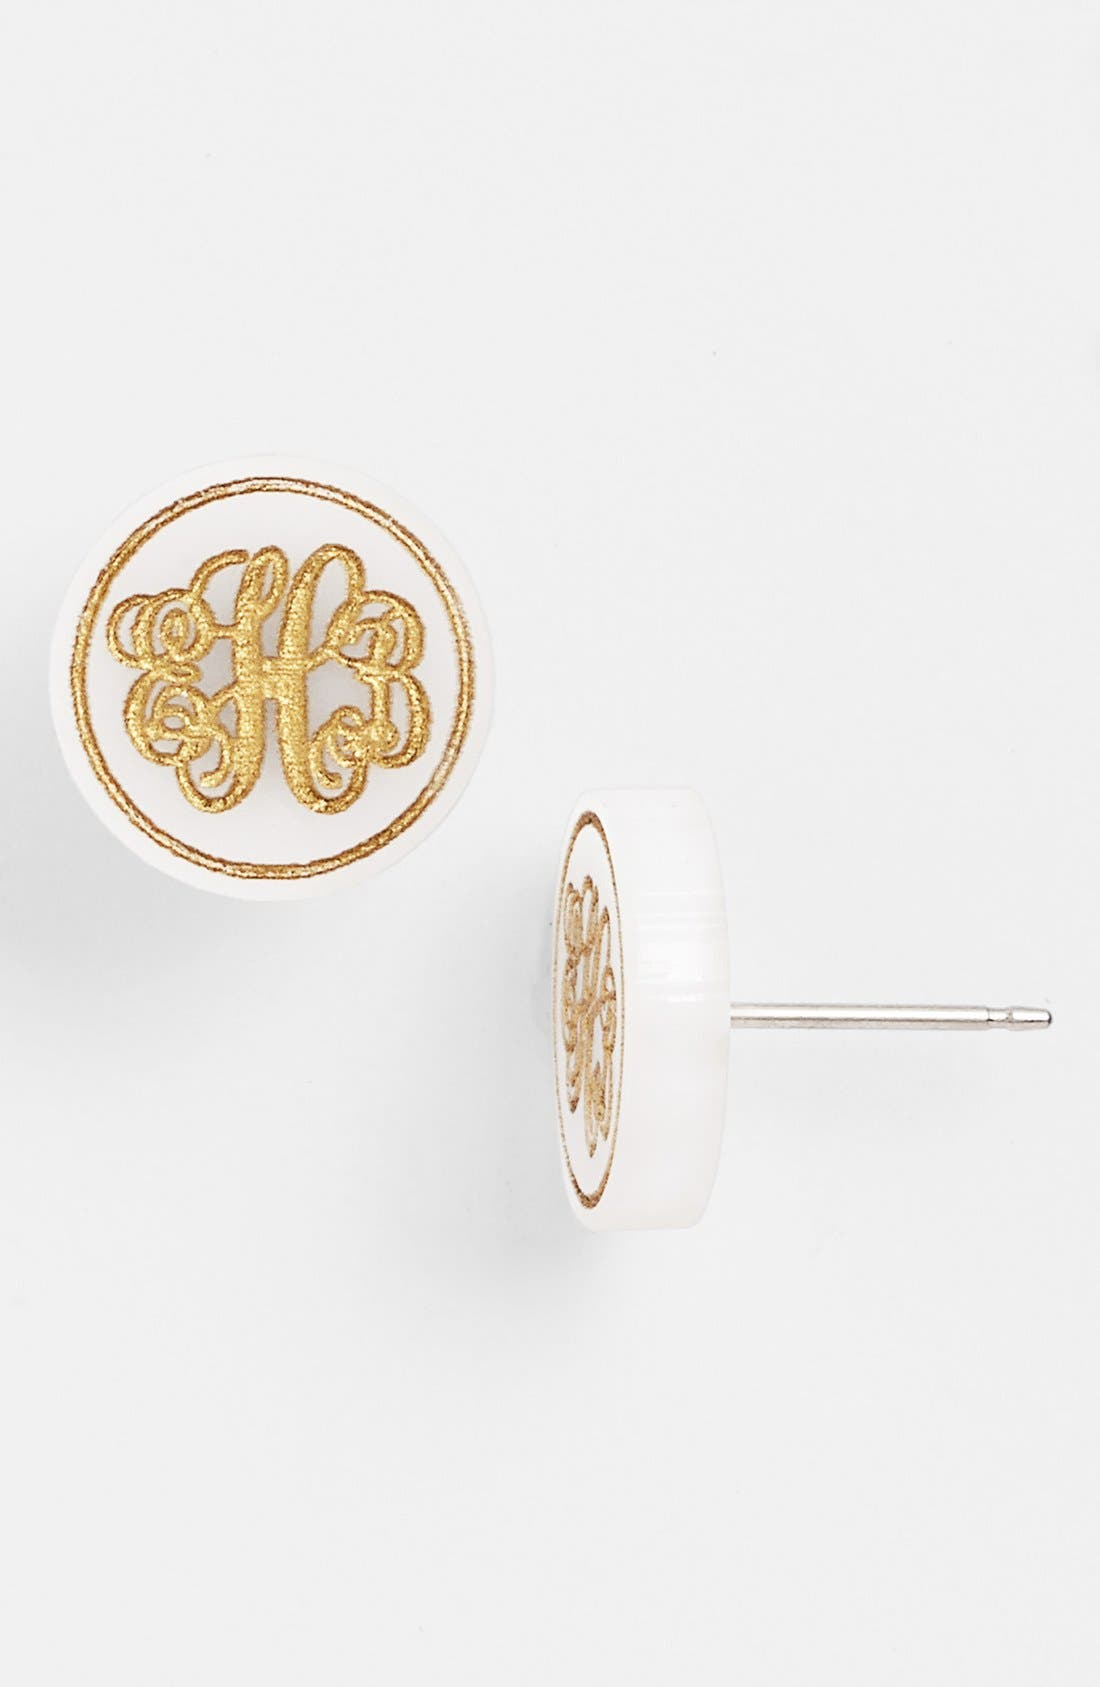 MOON AND LOLA 'Chelsea' Small Personalized Monogram Stud Earrings, Main, color, SNOW/ GOLD